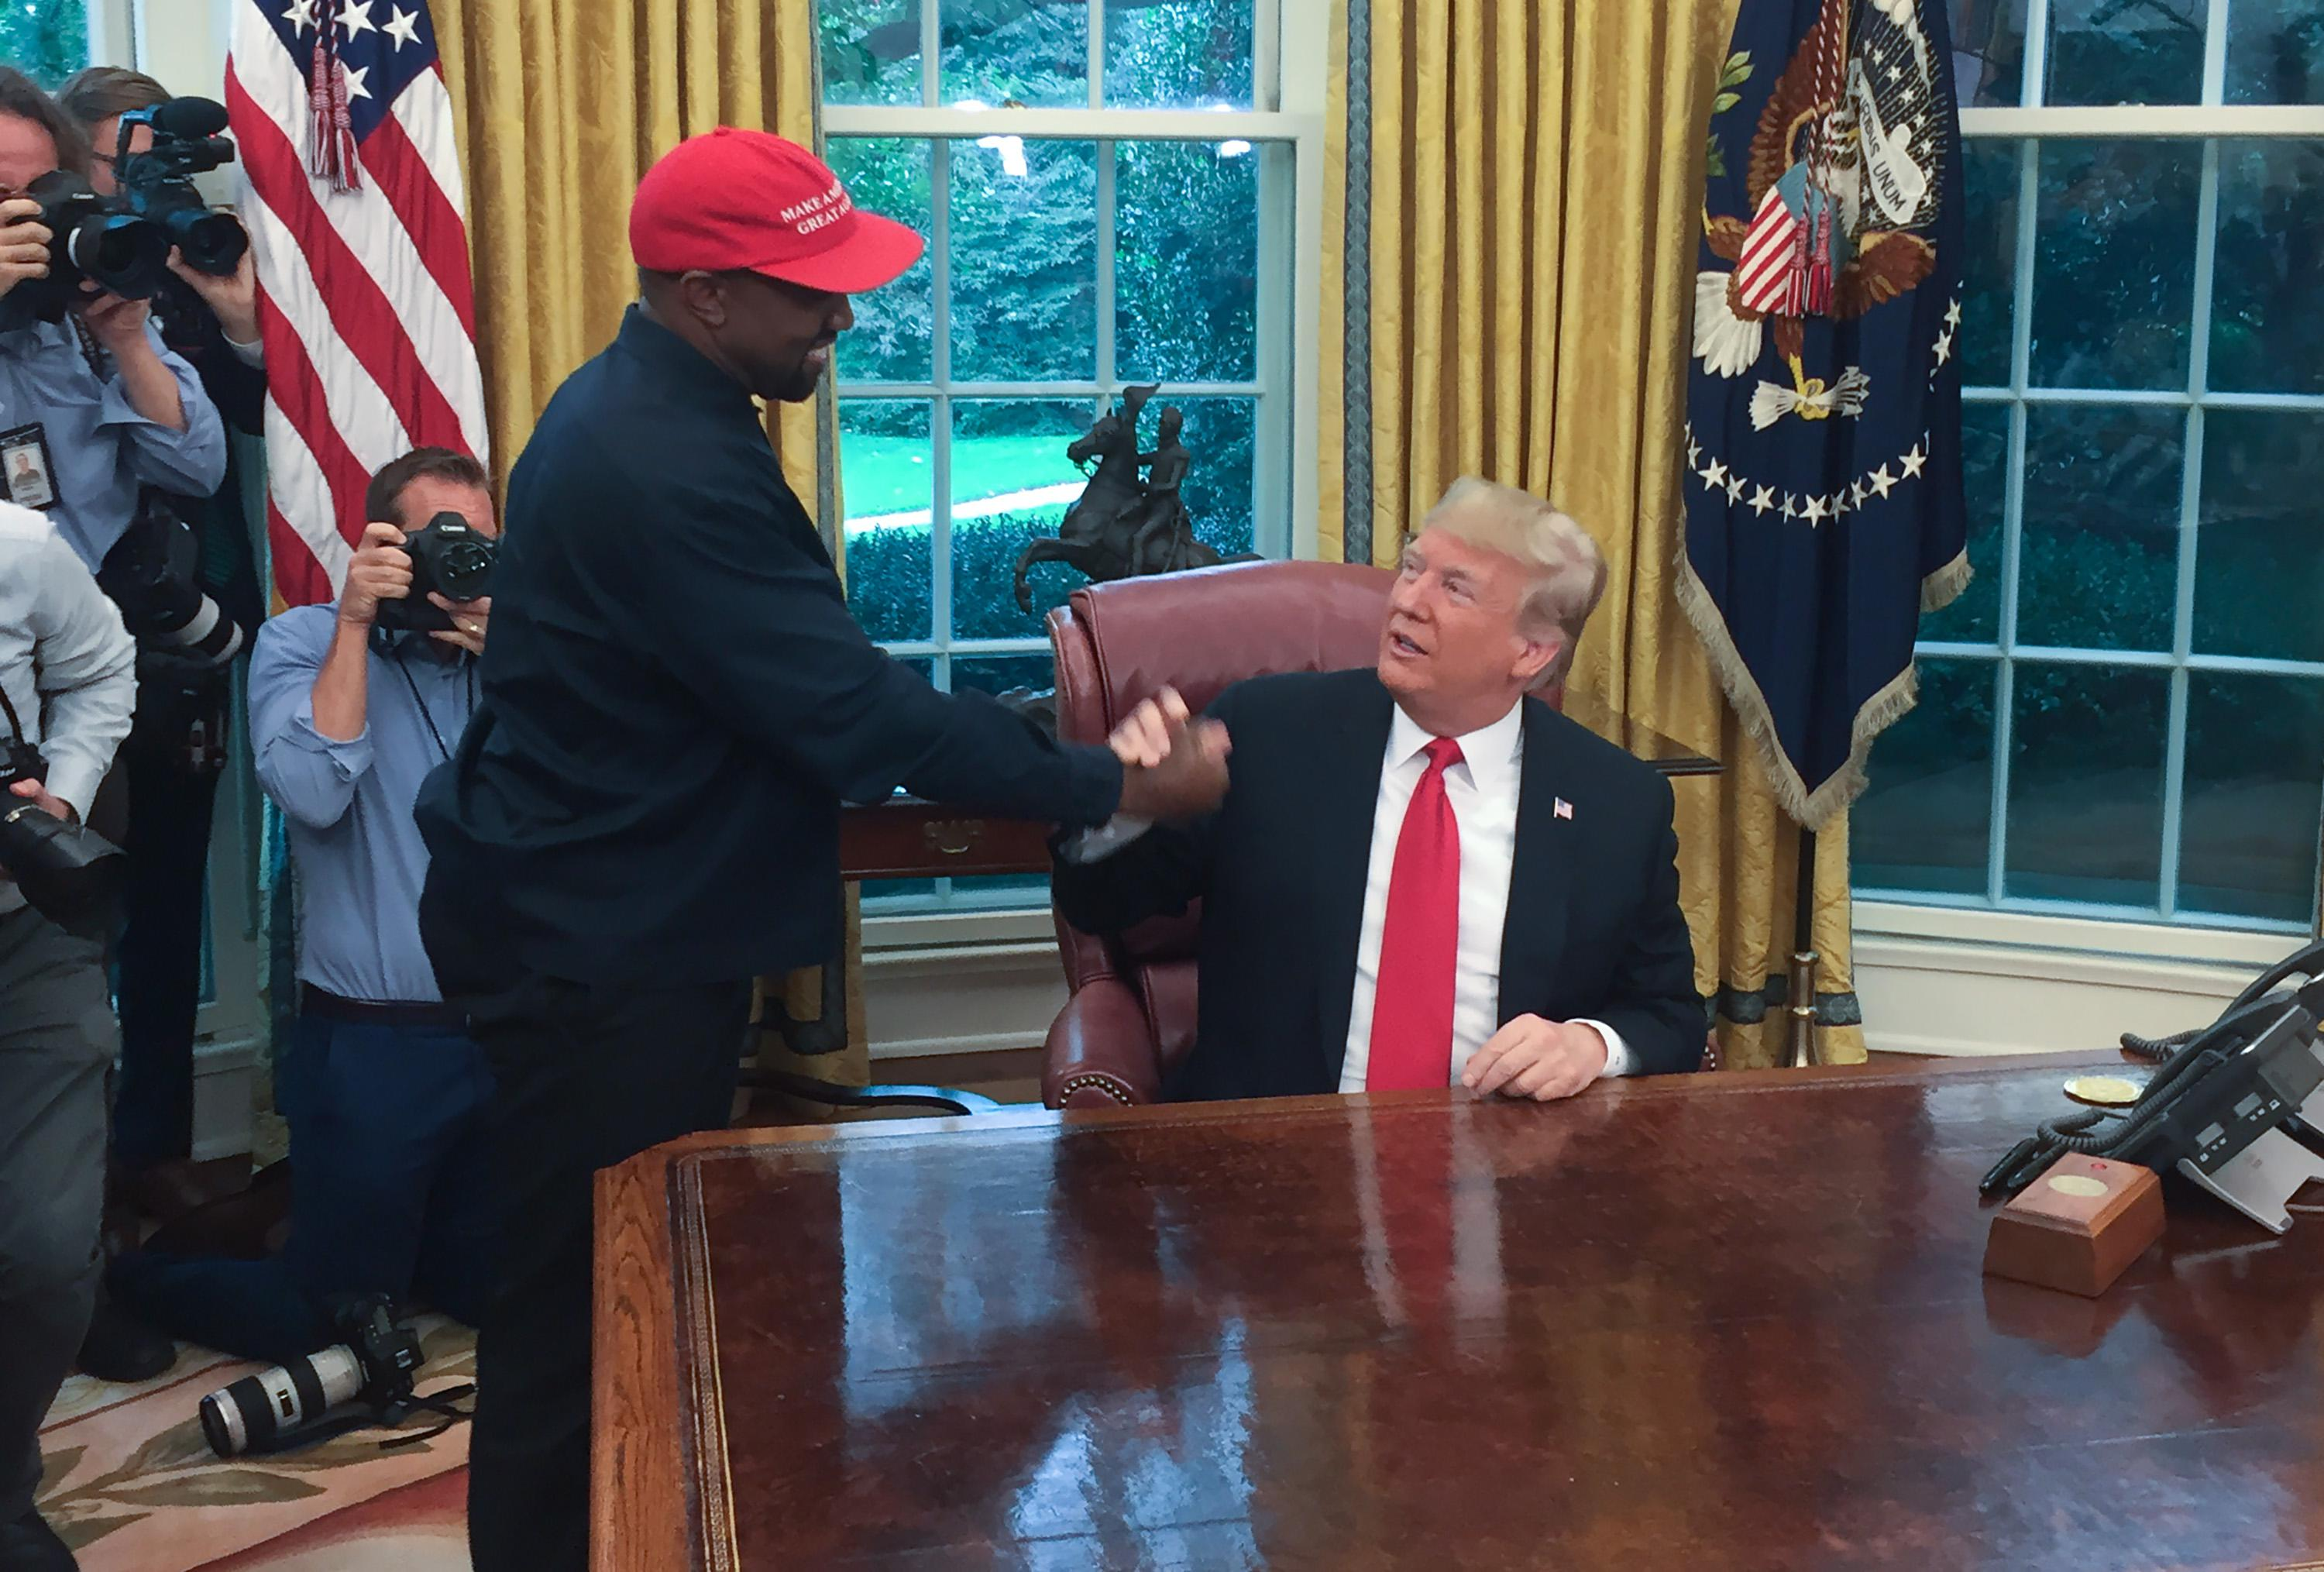 Kanye West, standing and wearing a MAGA hat, shakes hands with Donald Trump, seated at the desk in the Oval Office, as photographers in the background take their picture.